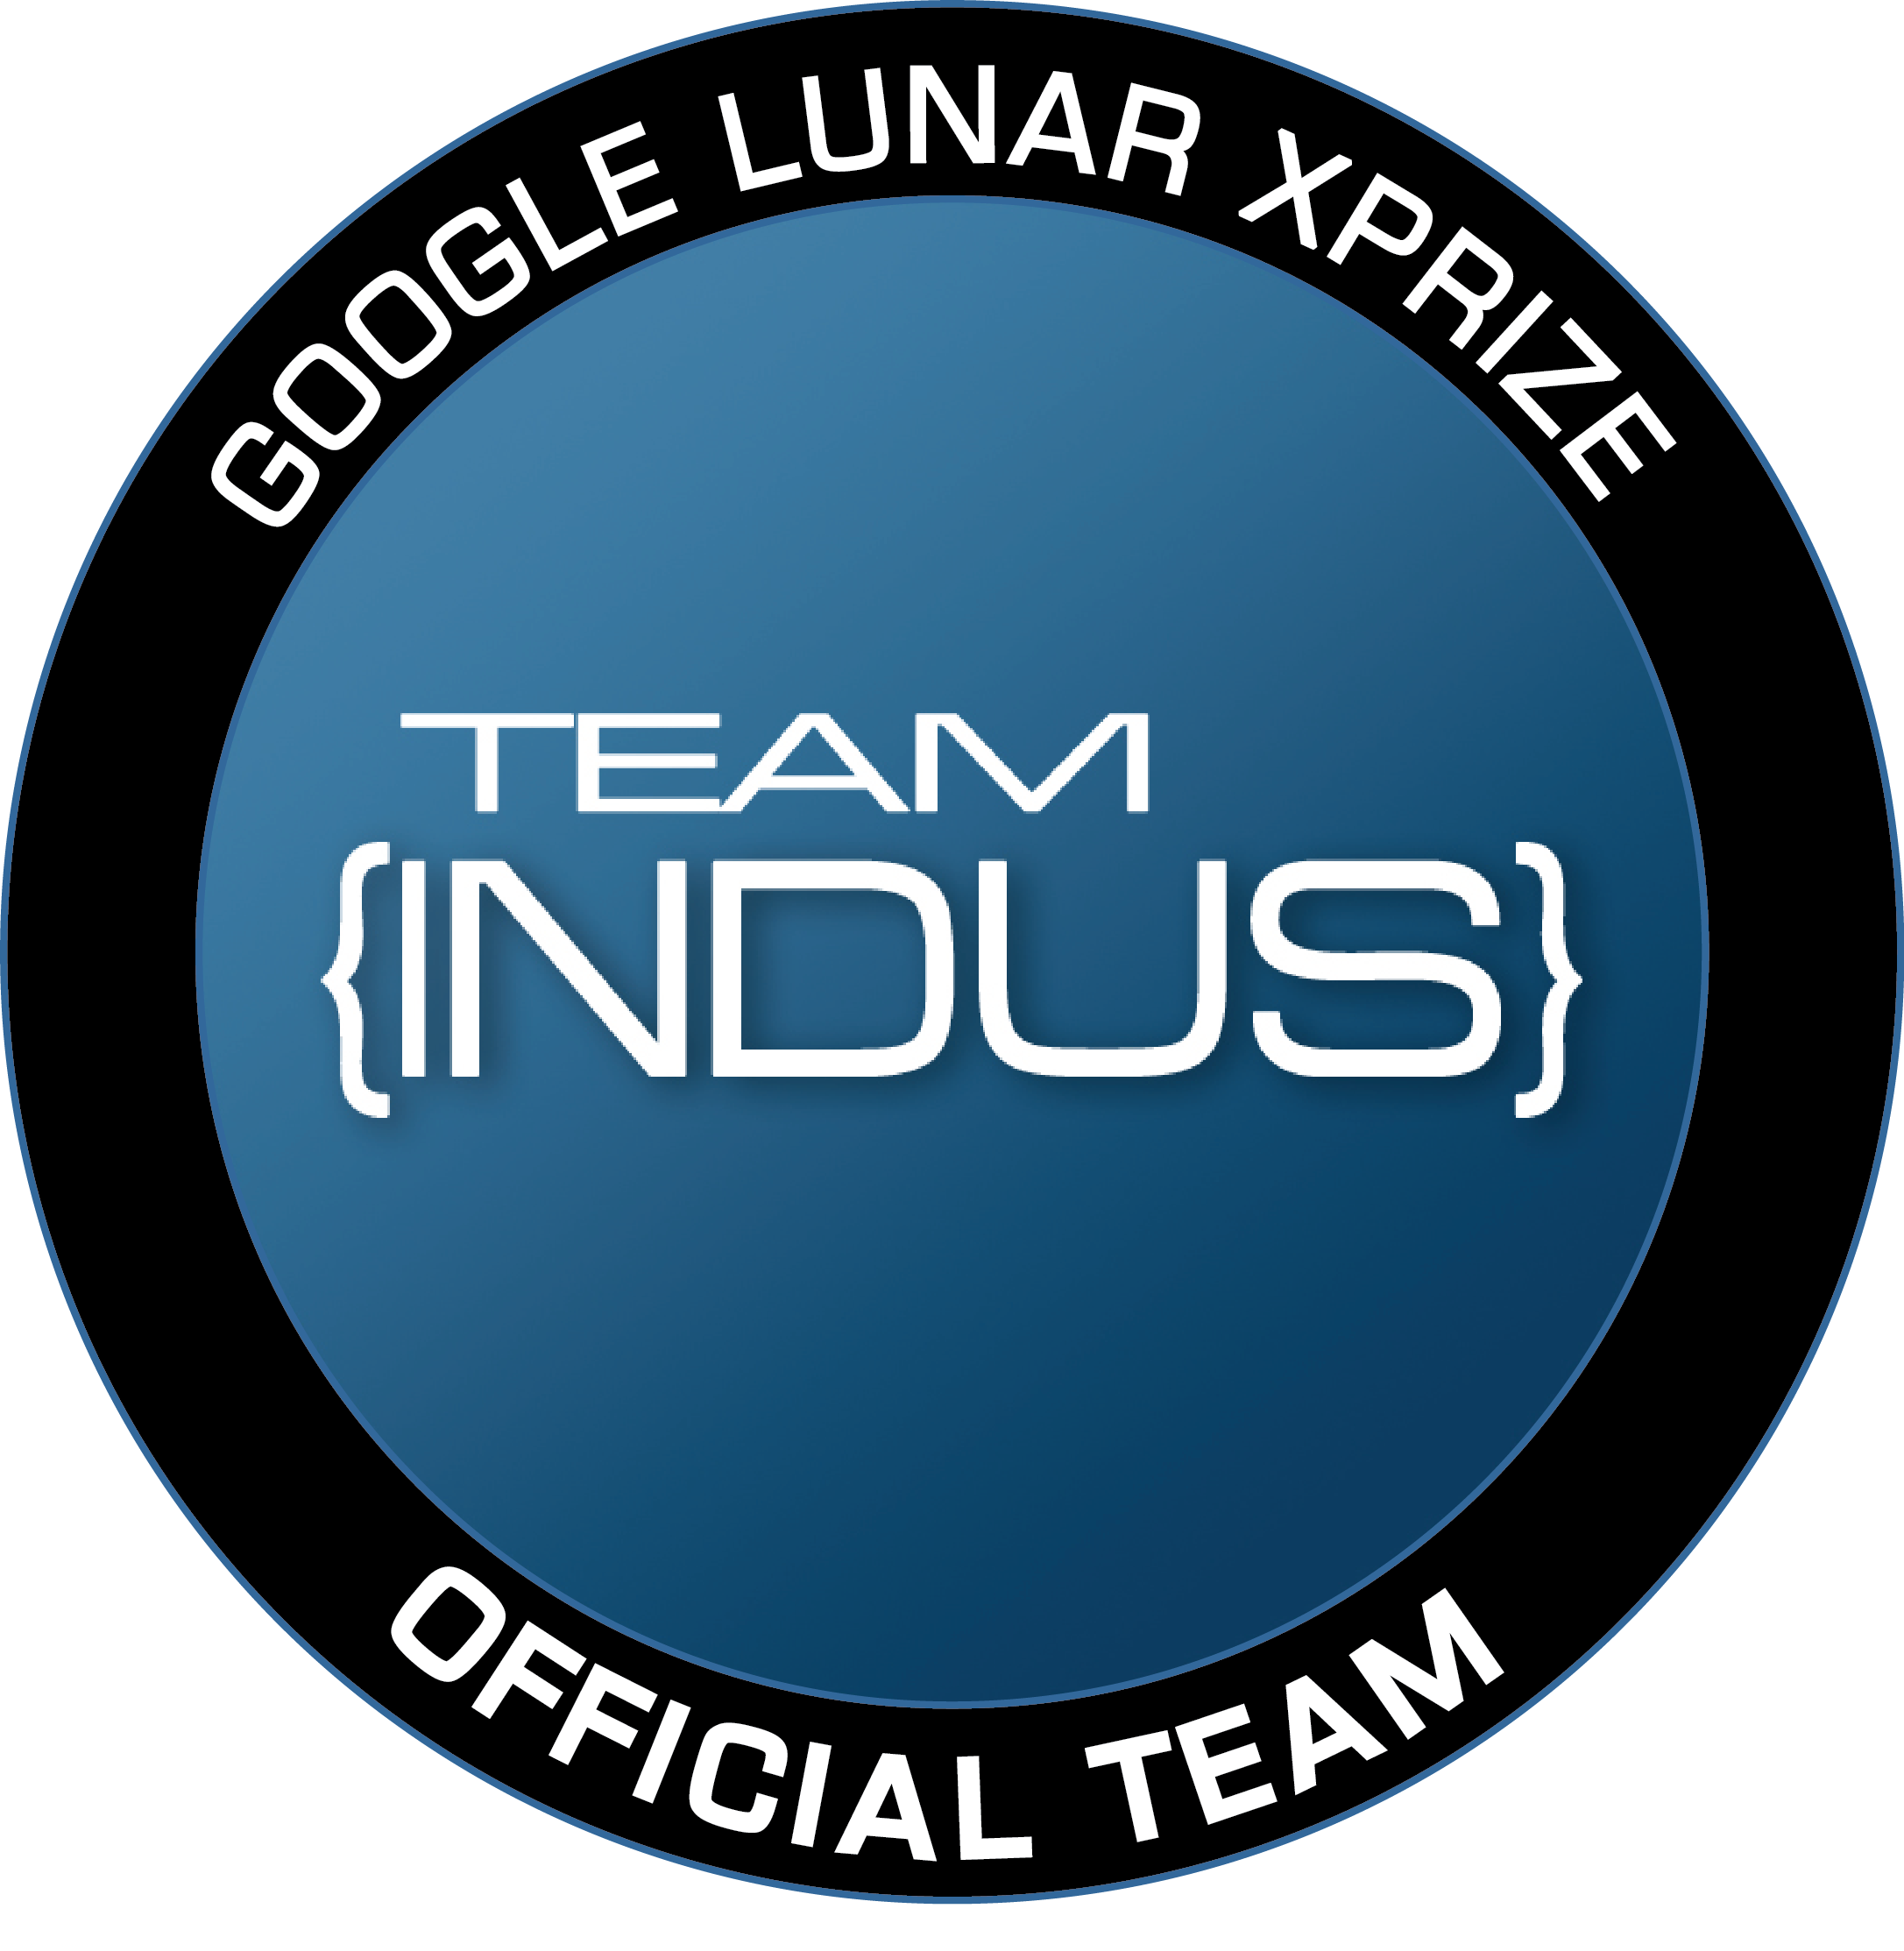 Indus team - India - Google Lunar Xprize